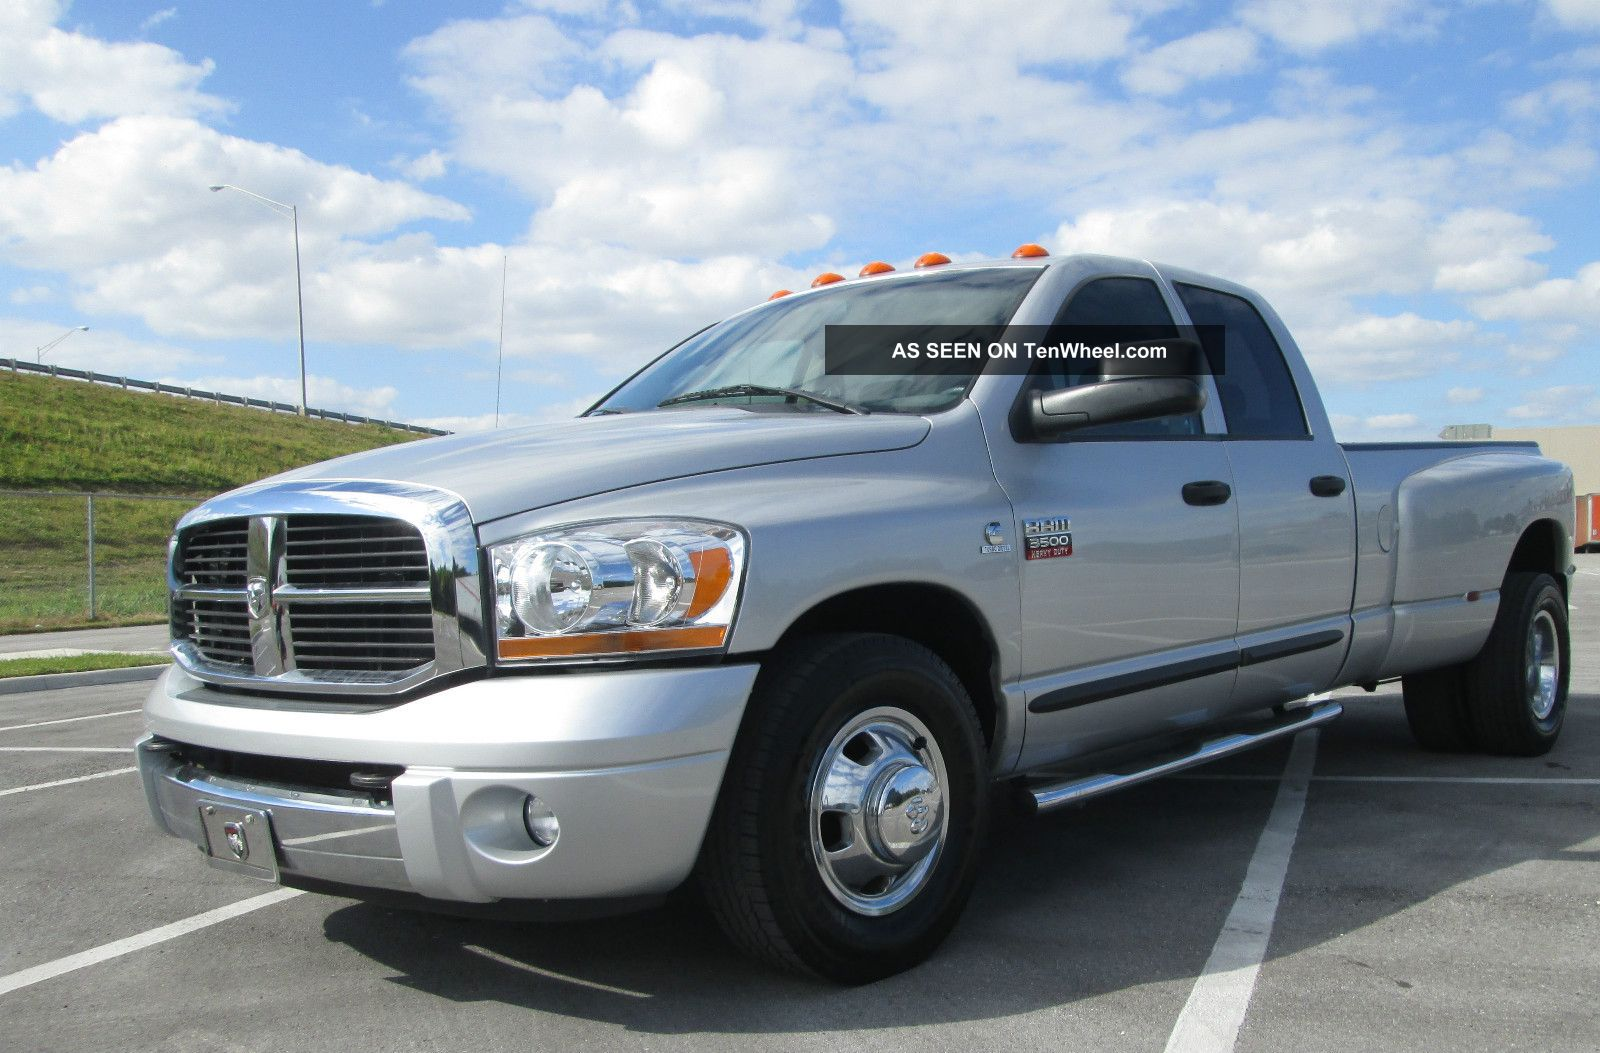 2007 dodge ram 3500 slt quad cab 5 9l cummins turbo diesel. Black Bedroom Furniture Sets. Home Design Ideas